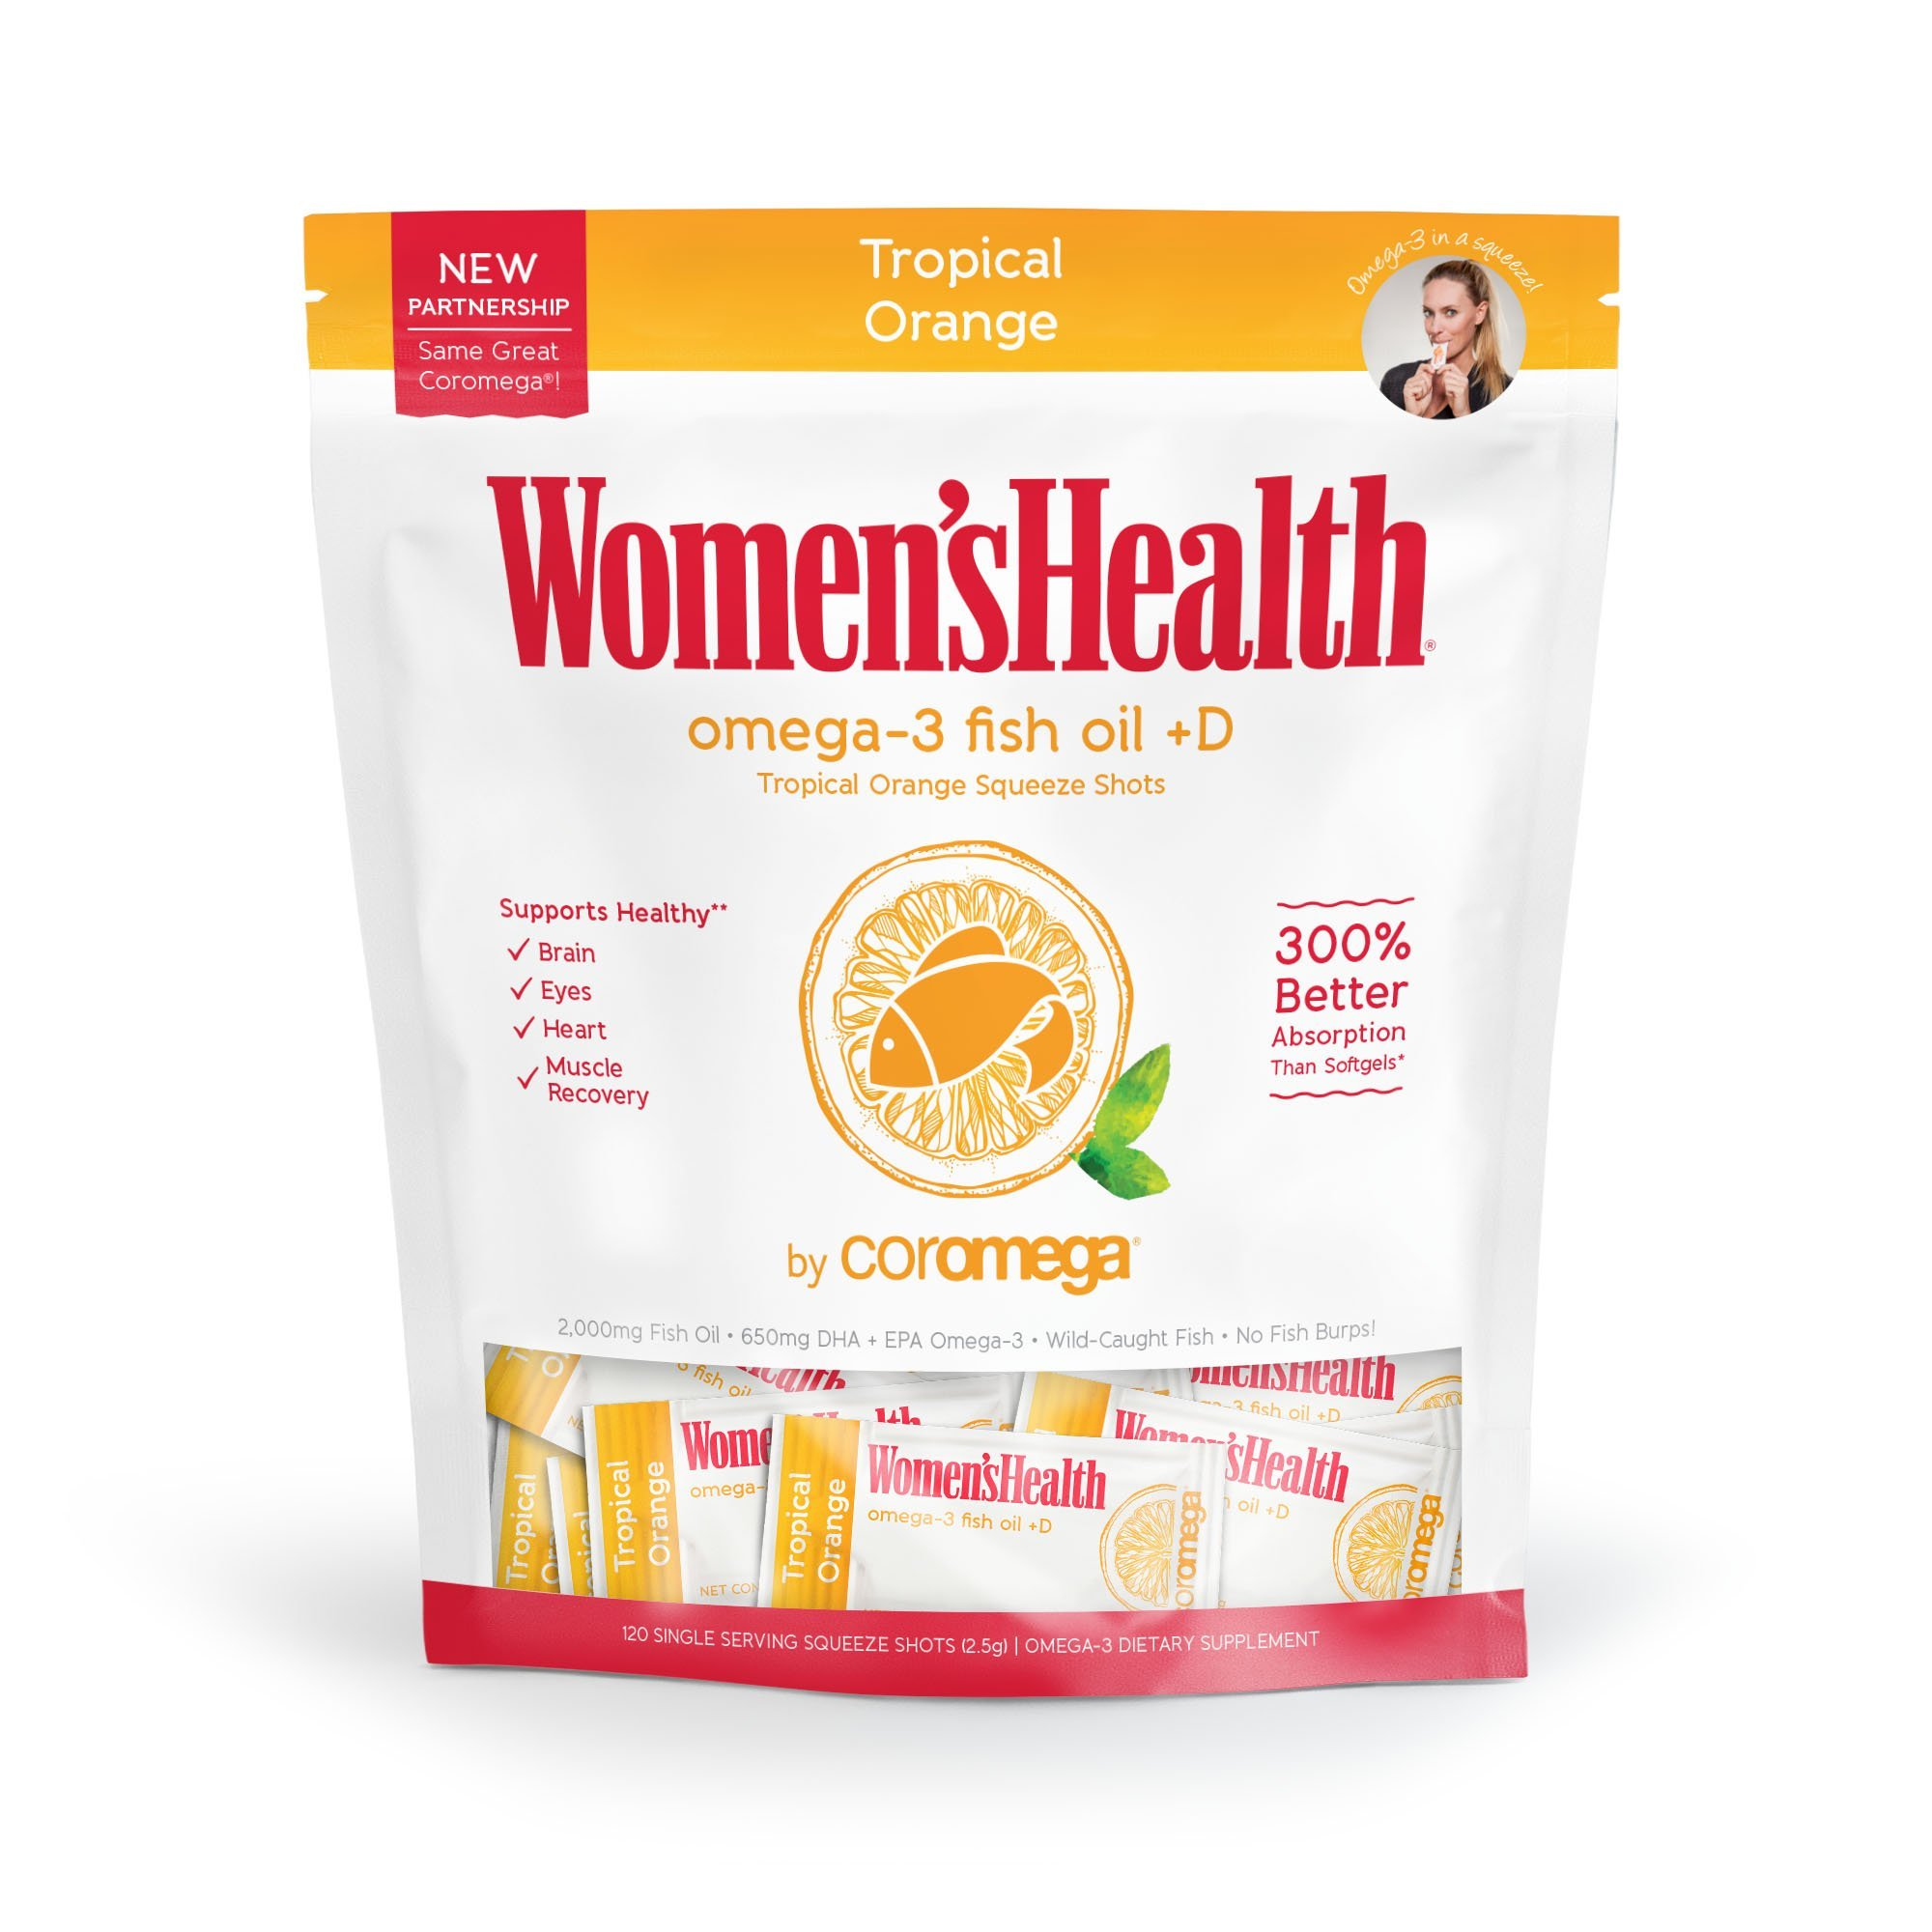 Coromega Women's Health Omega 3 Fish Oil Supplement, 650mg of Omega-3s with 3X Better Absorption Than Softgels, Tropical Orange Flavor, 120 Single Serve Squeeze Packets